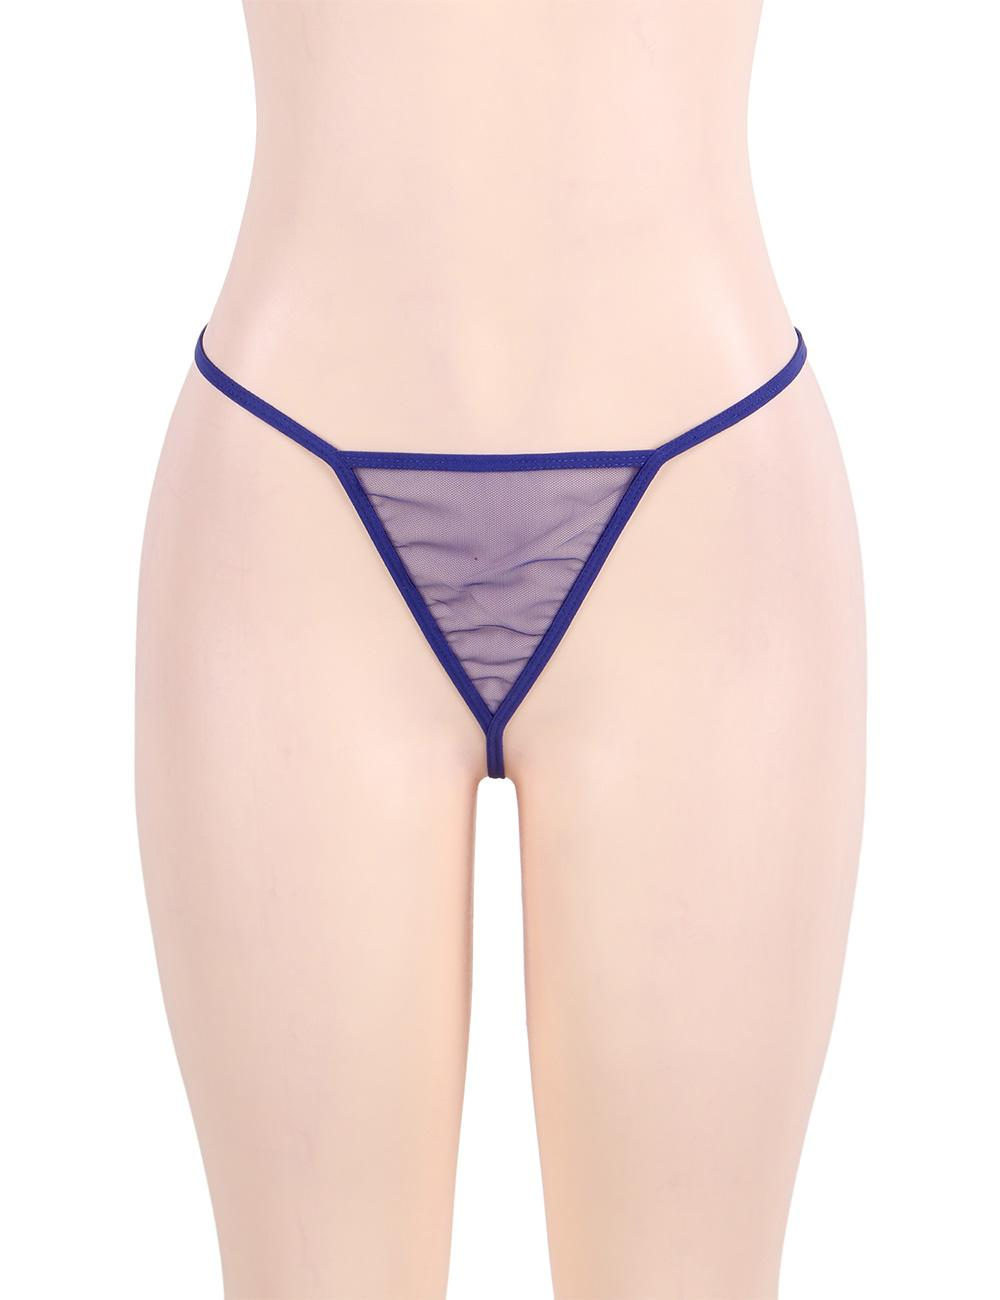 Plus size blue mesh g-string